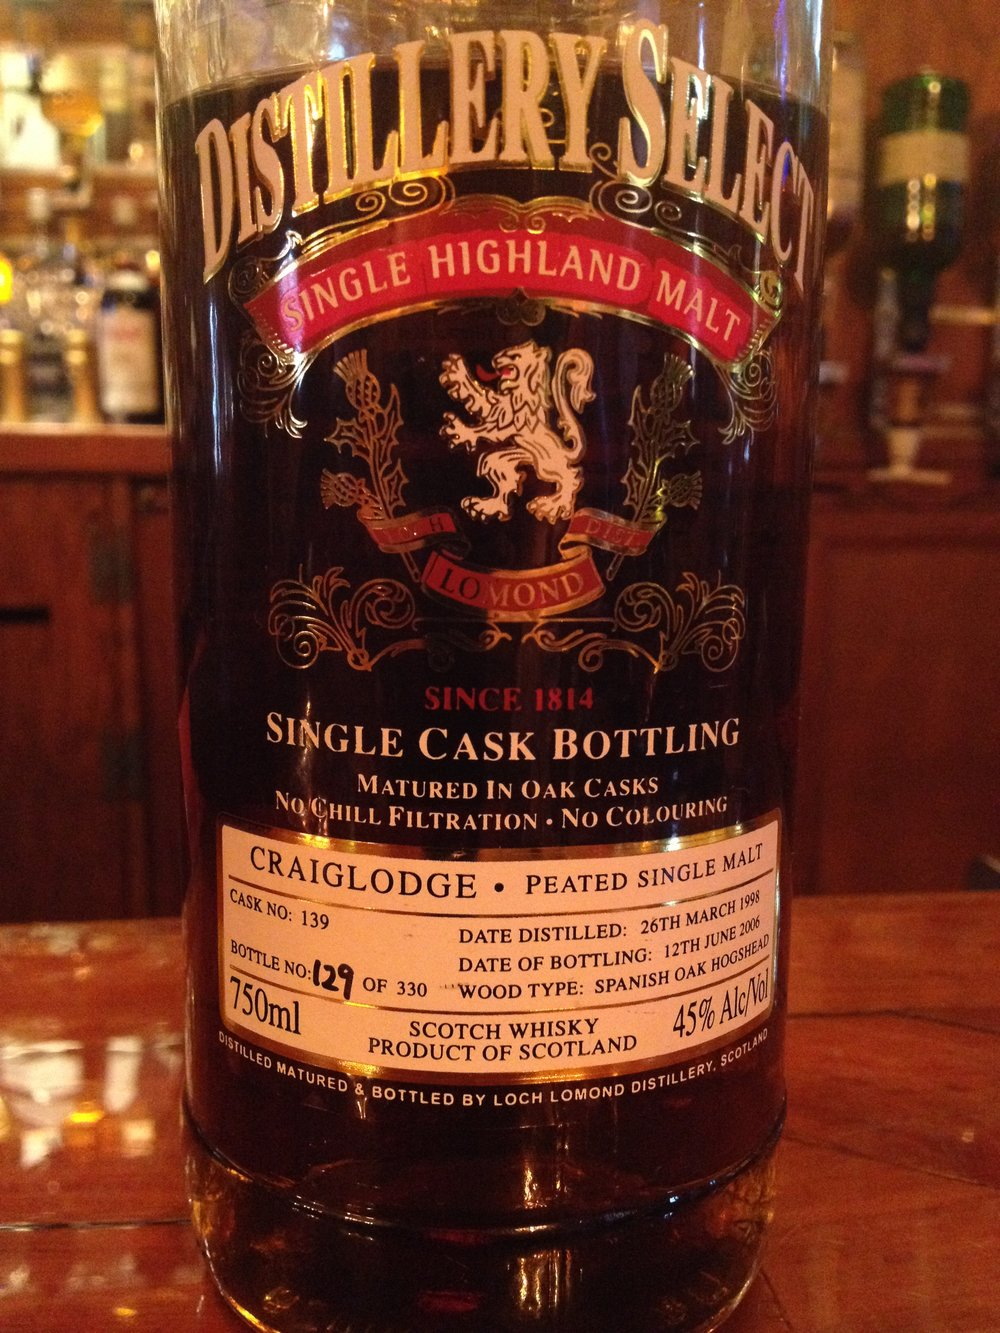 8 Year Old | 45% ABV - Distillery | Loch Lomond